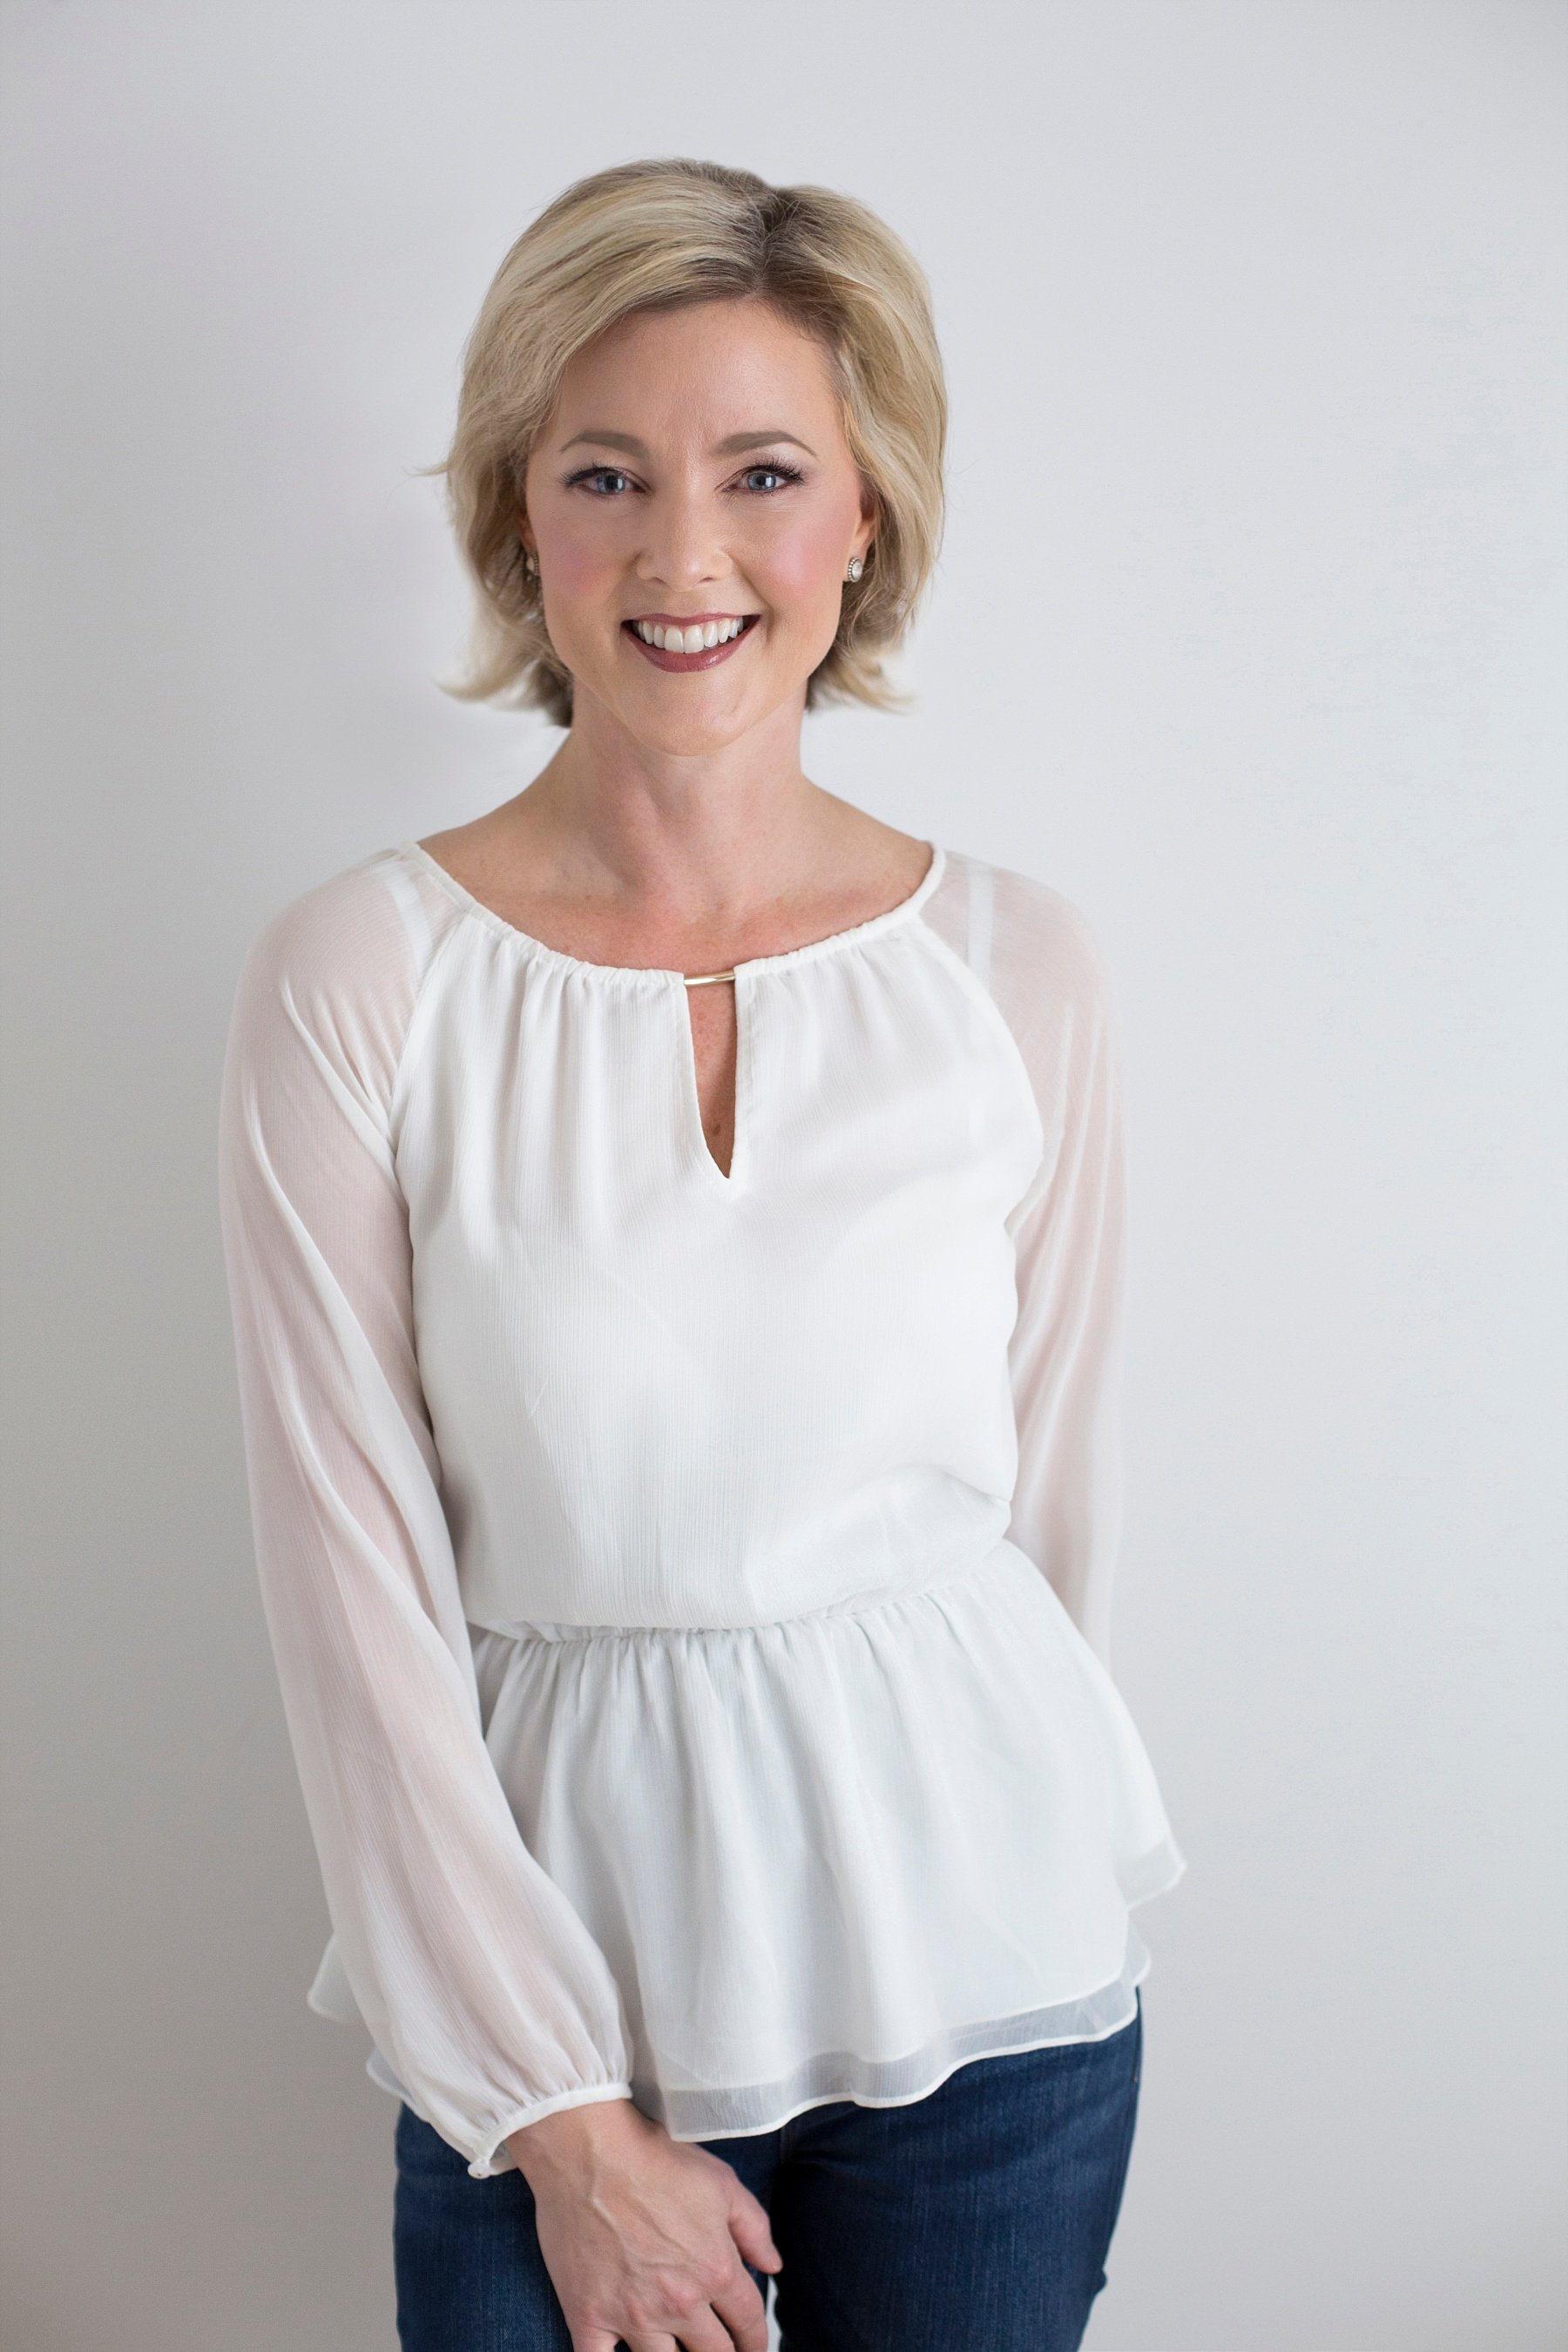 Allison Dunn in a white blouse smiling as she poses against a white background.